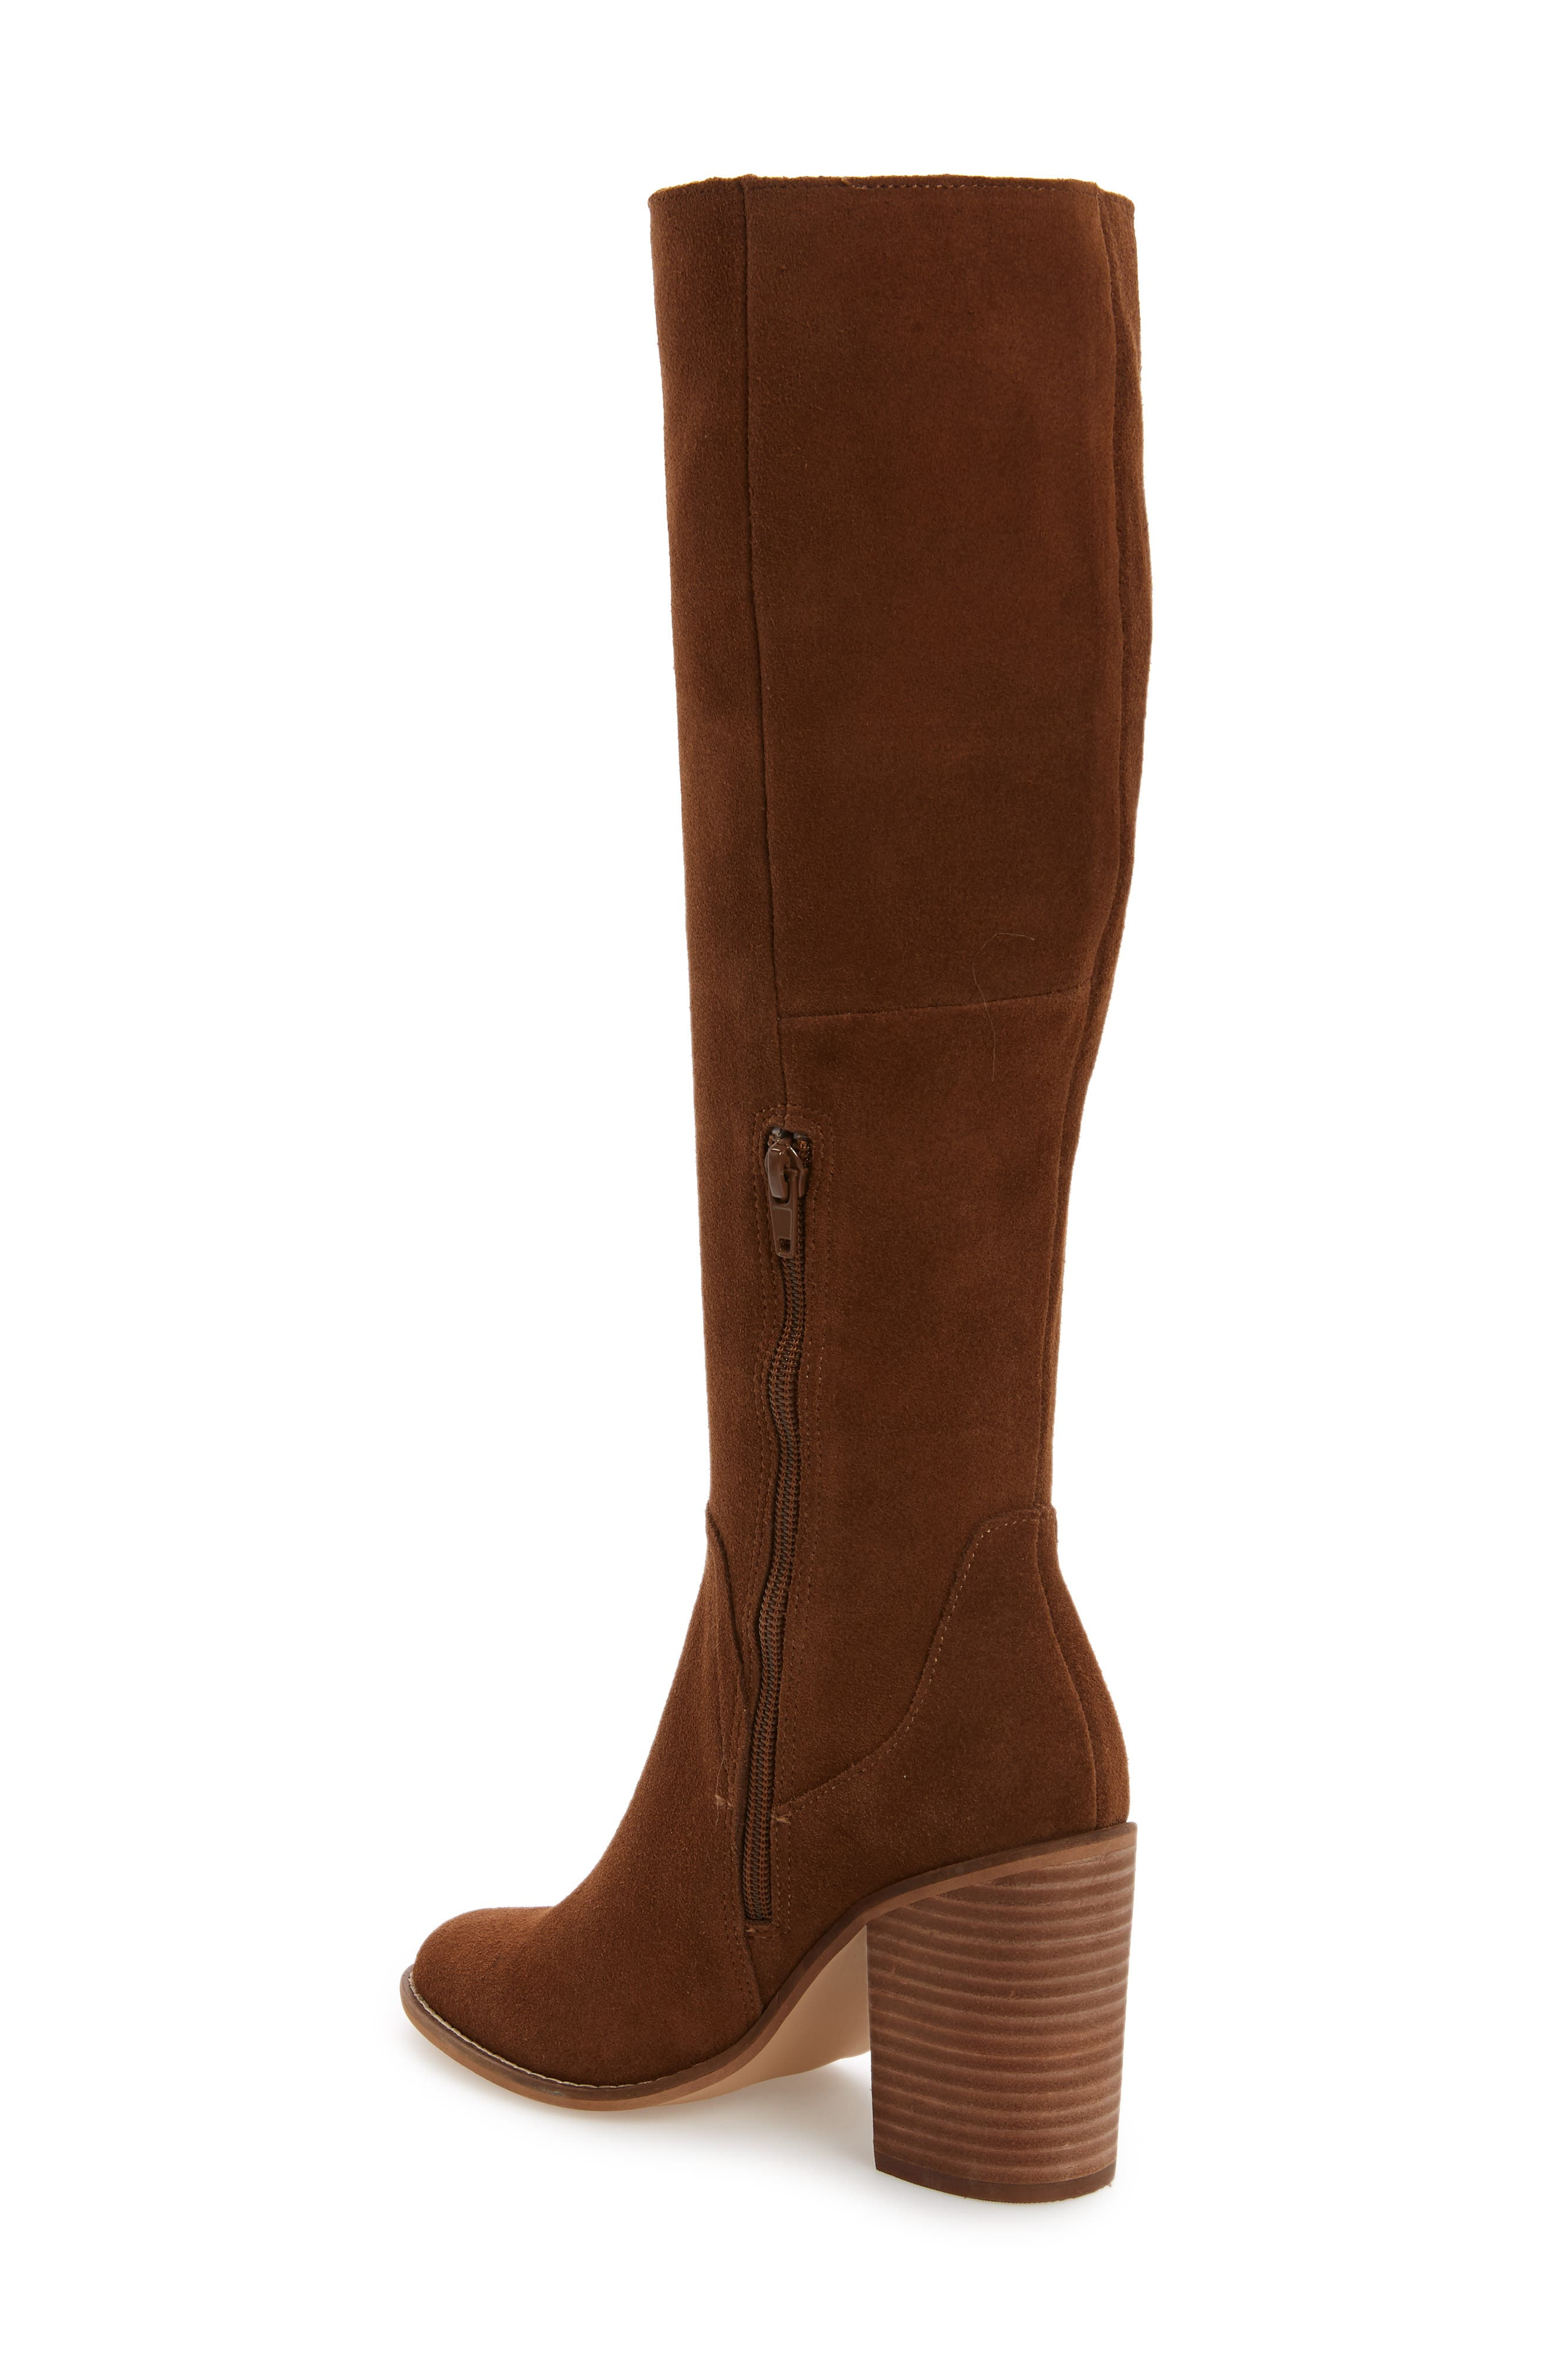 Roxana Knee High Boot,                             Alternate thumbnail 2, color,                             CHESTNUT SUEDE